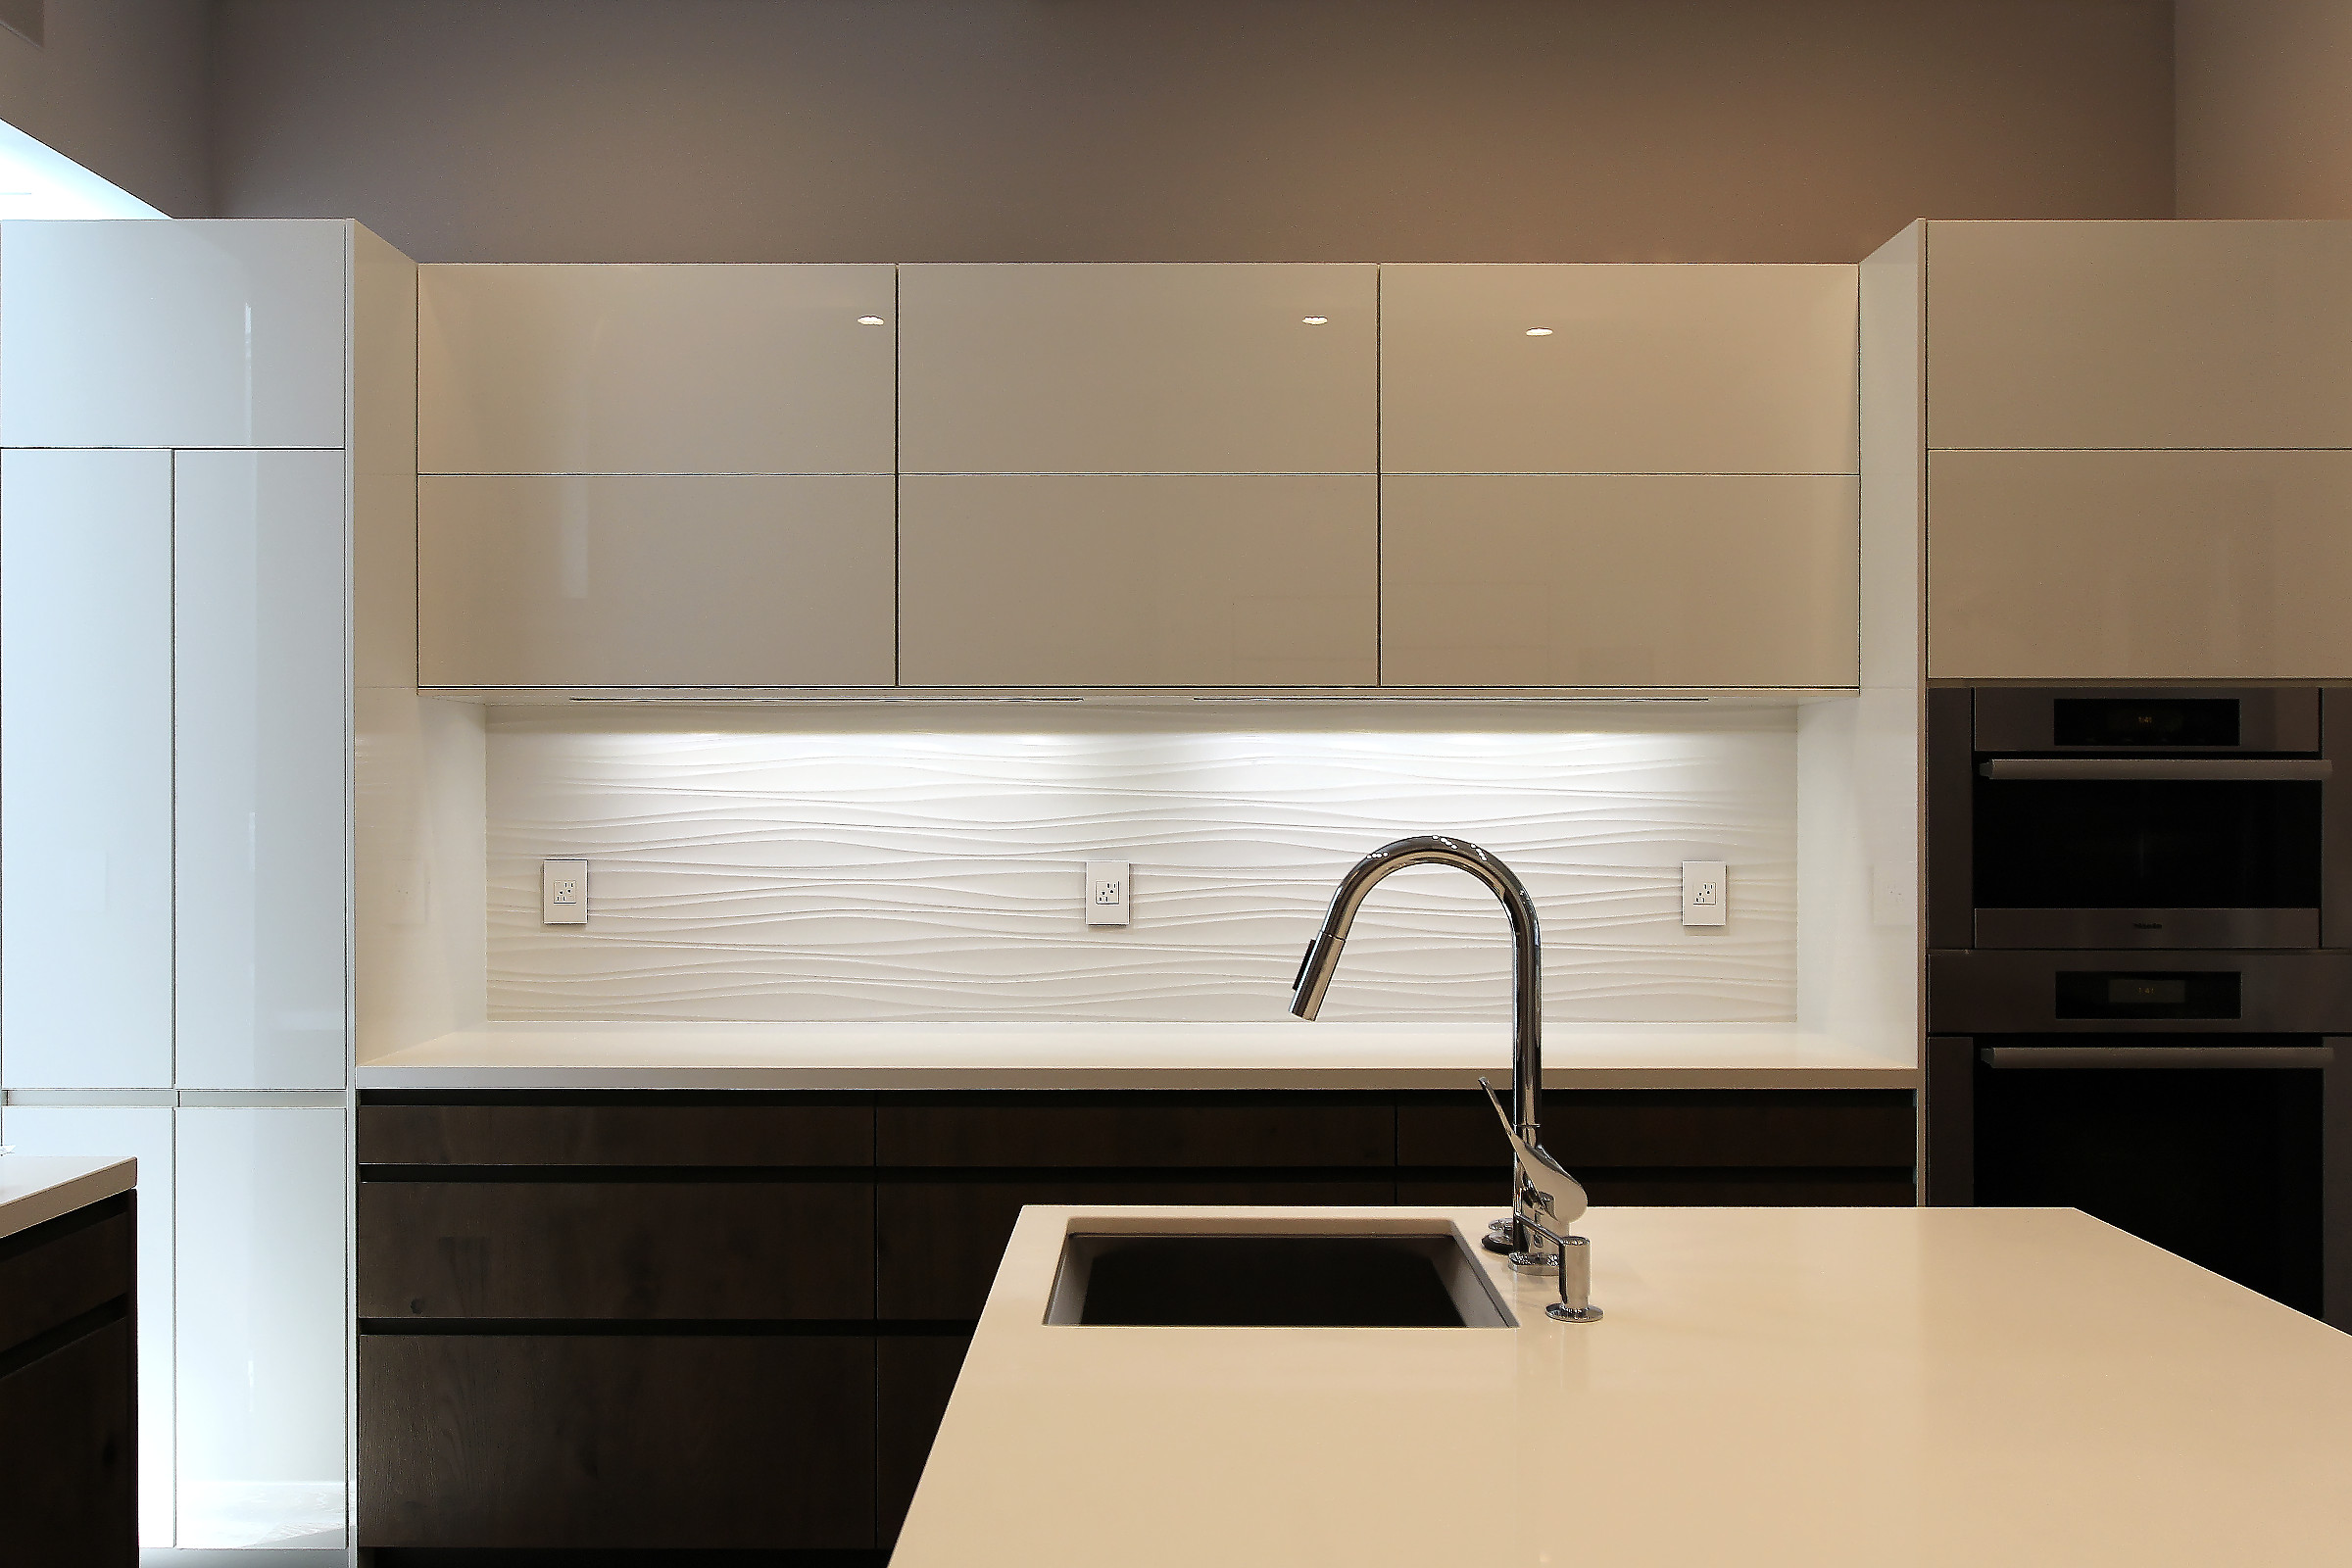 These gloss white Leicht wall cabinets have electric motors (Blumotion) that open and close them with a touch.